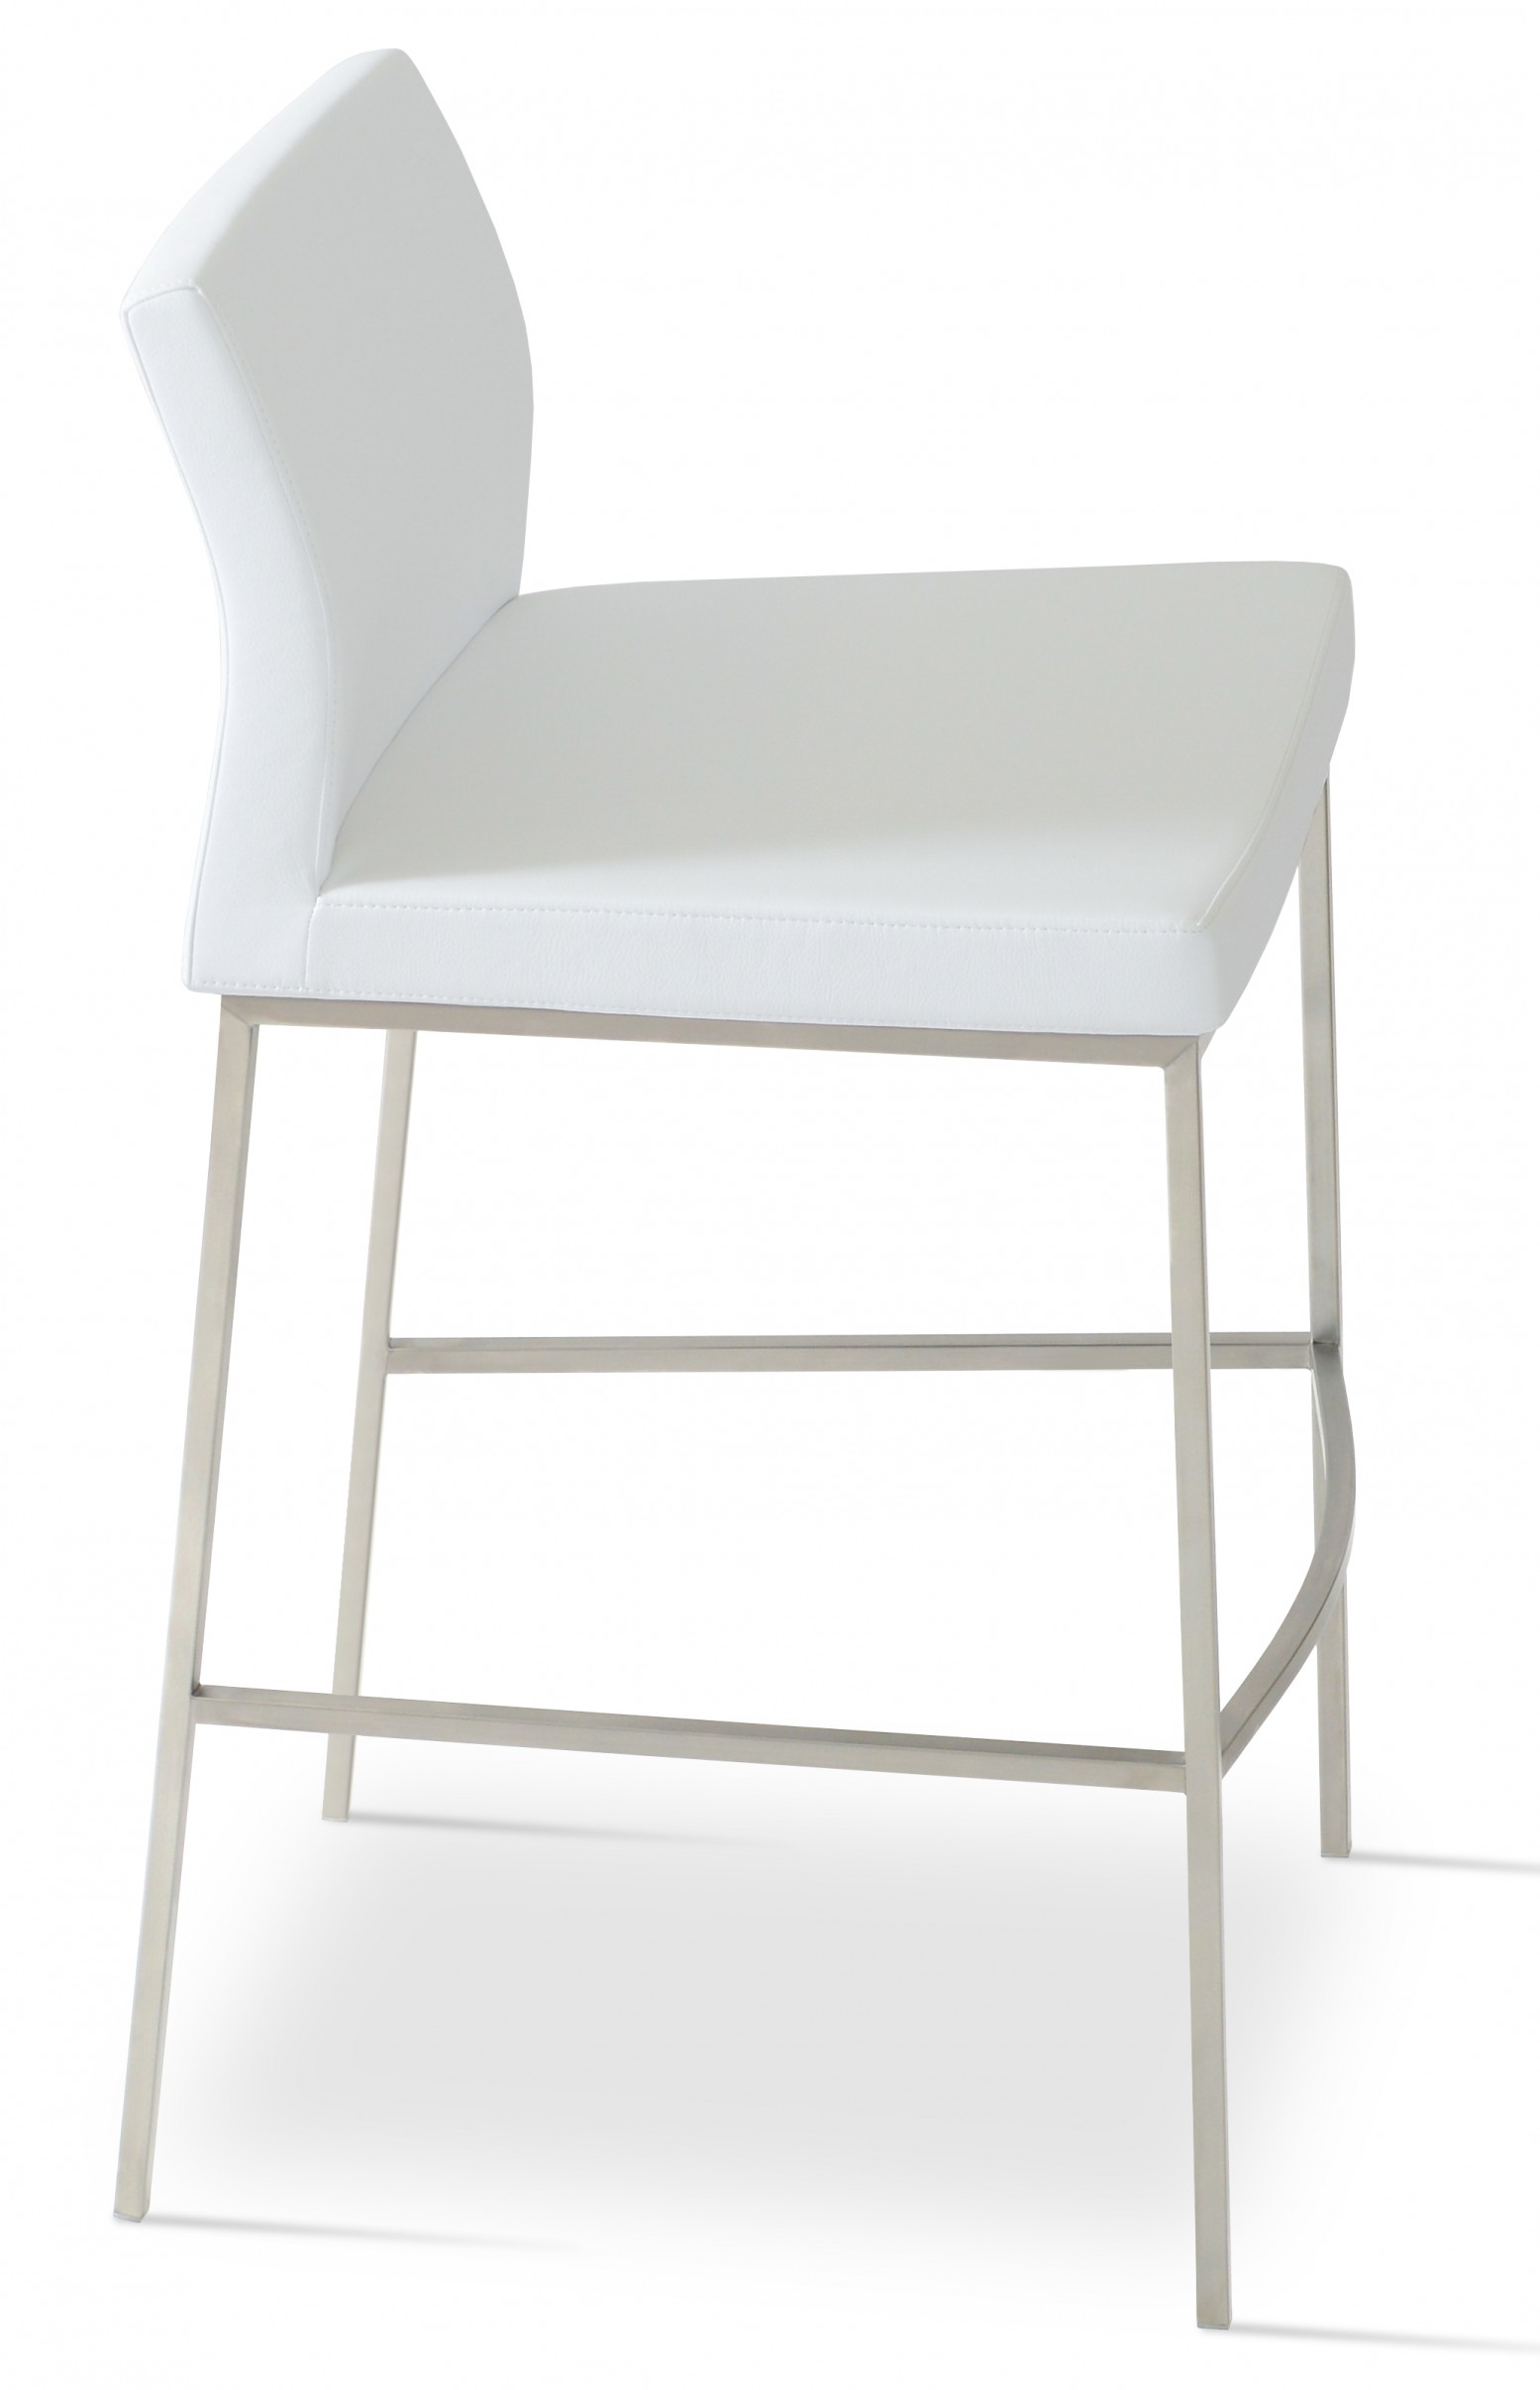 Terrific Pasha Chrome Bar Stool Stainless Steel White Leatherette Low Back Andrewgaddart Wooden Chair Designs For Living Room Andrewgaddartcom